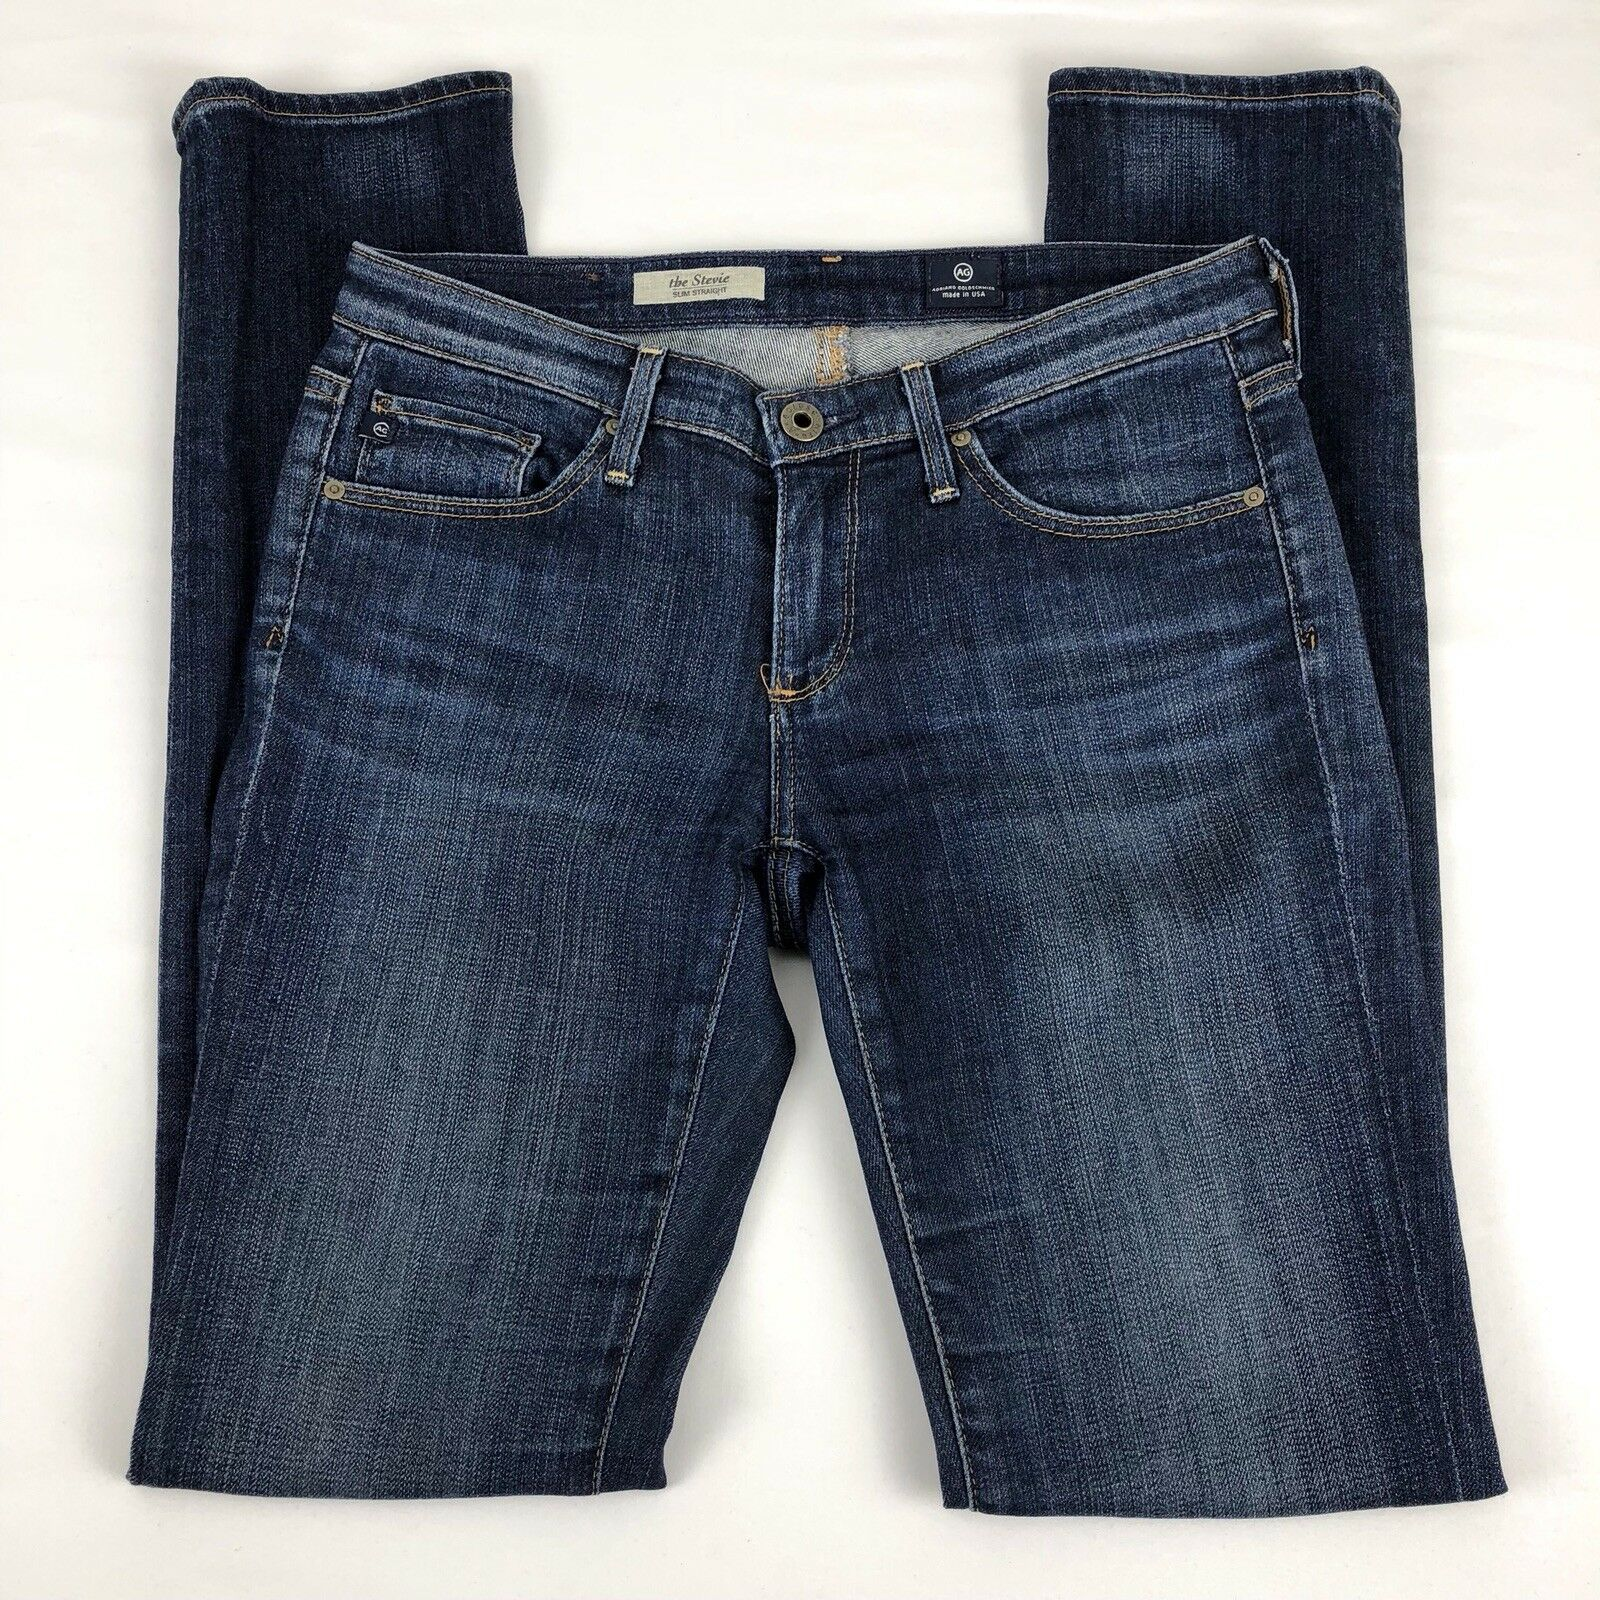 AG Adriano goldschmied Womens Stevie Slim Straight Low Rise Jeans - Size 26 R